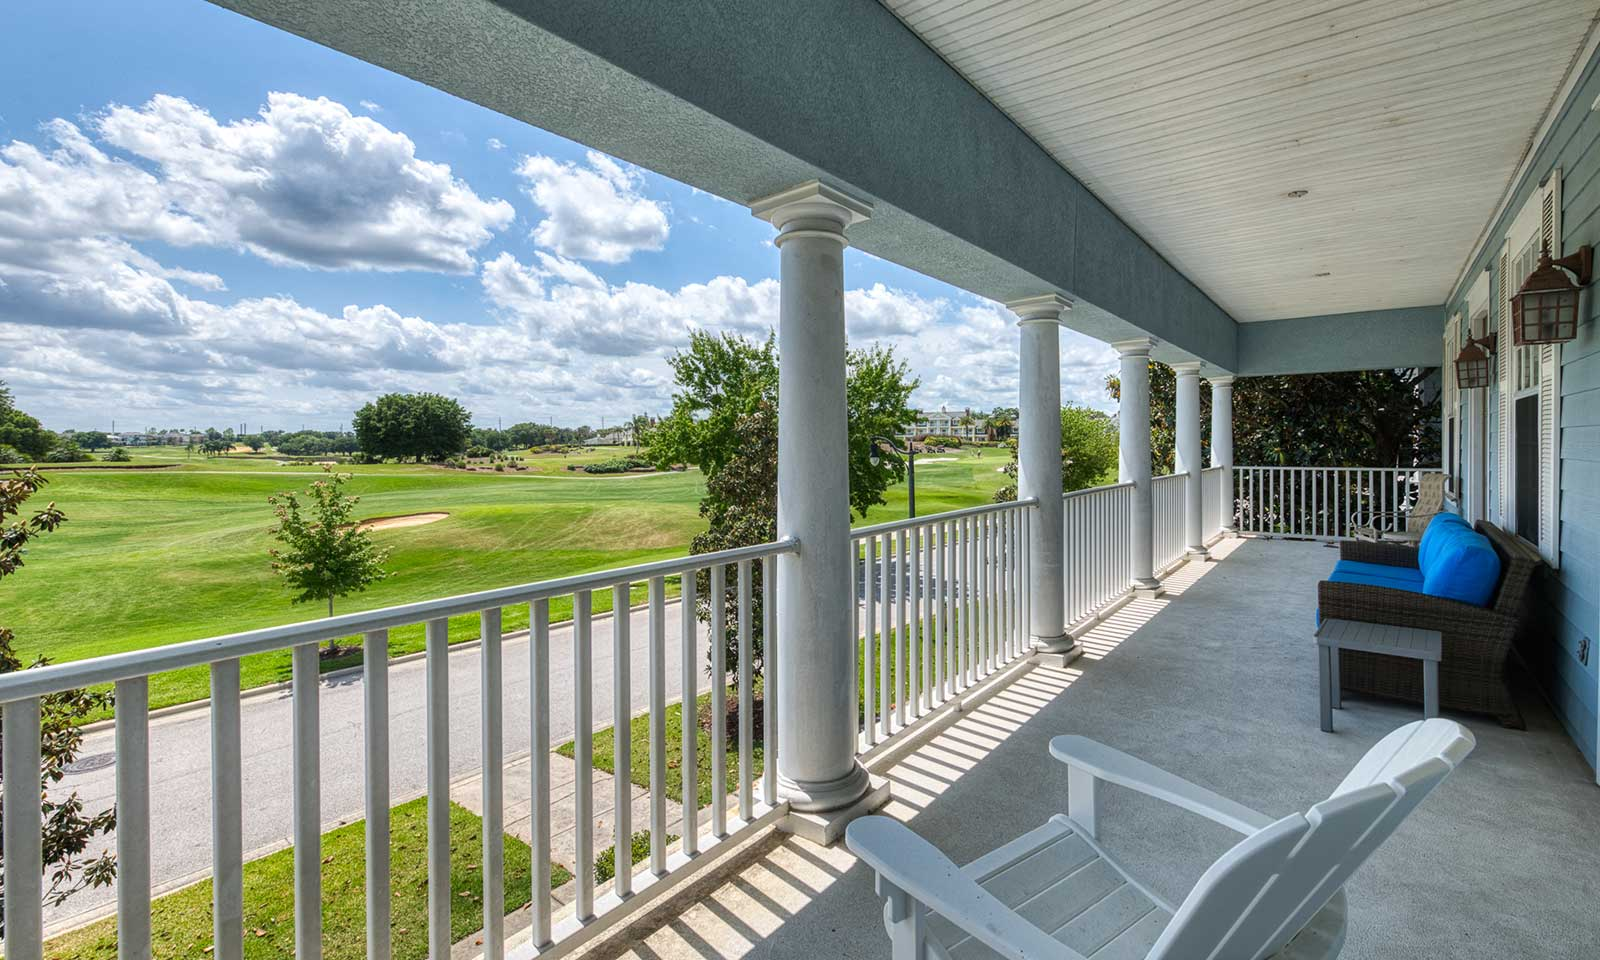 [amenities:Golf-Course-View:3] Golf Course View